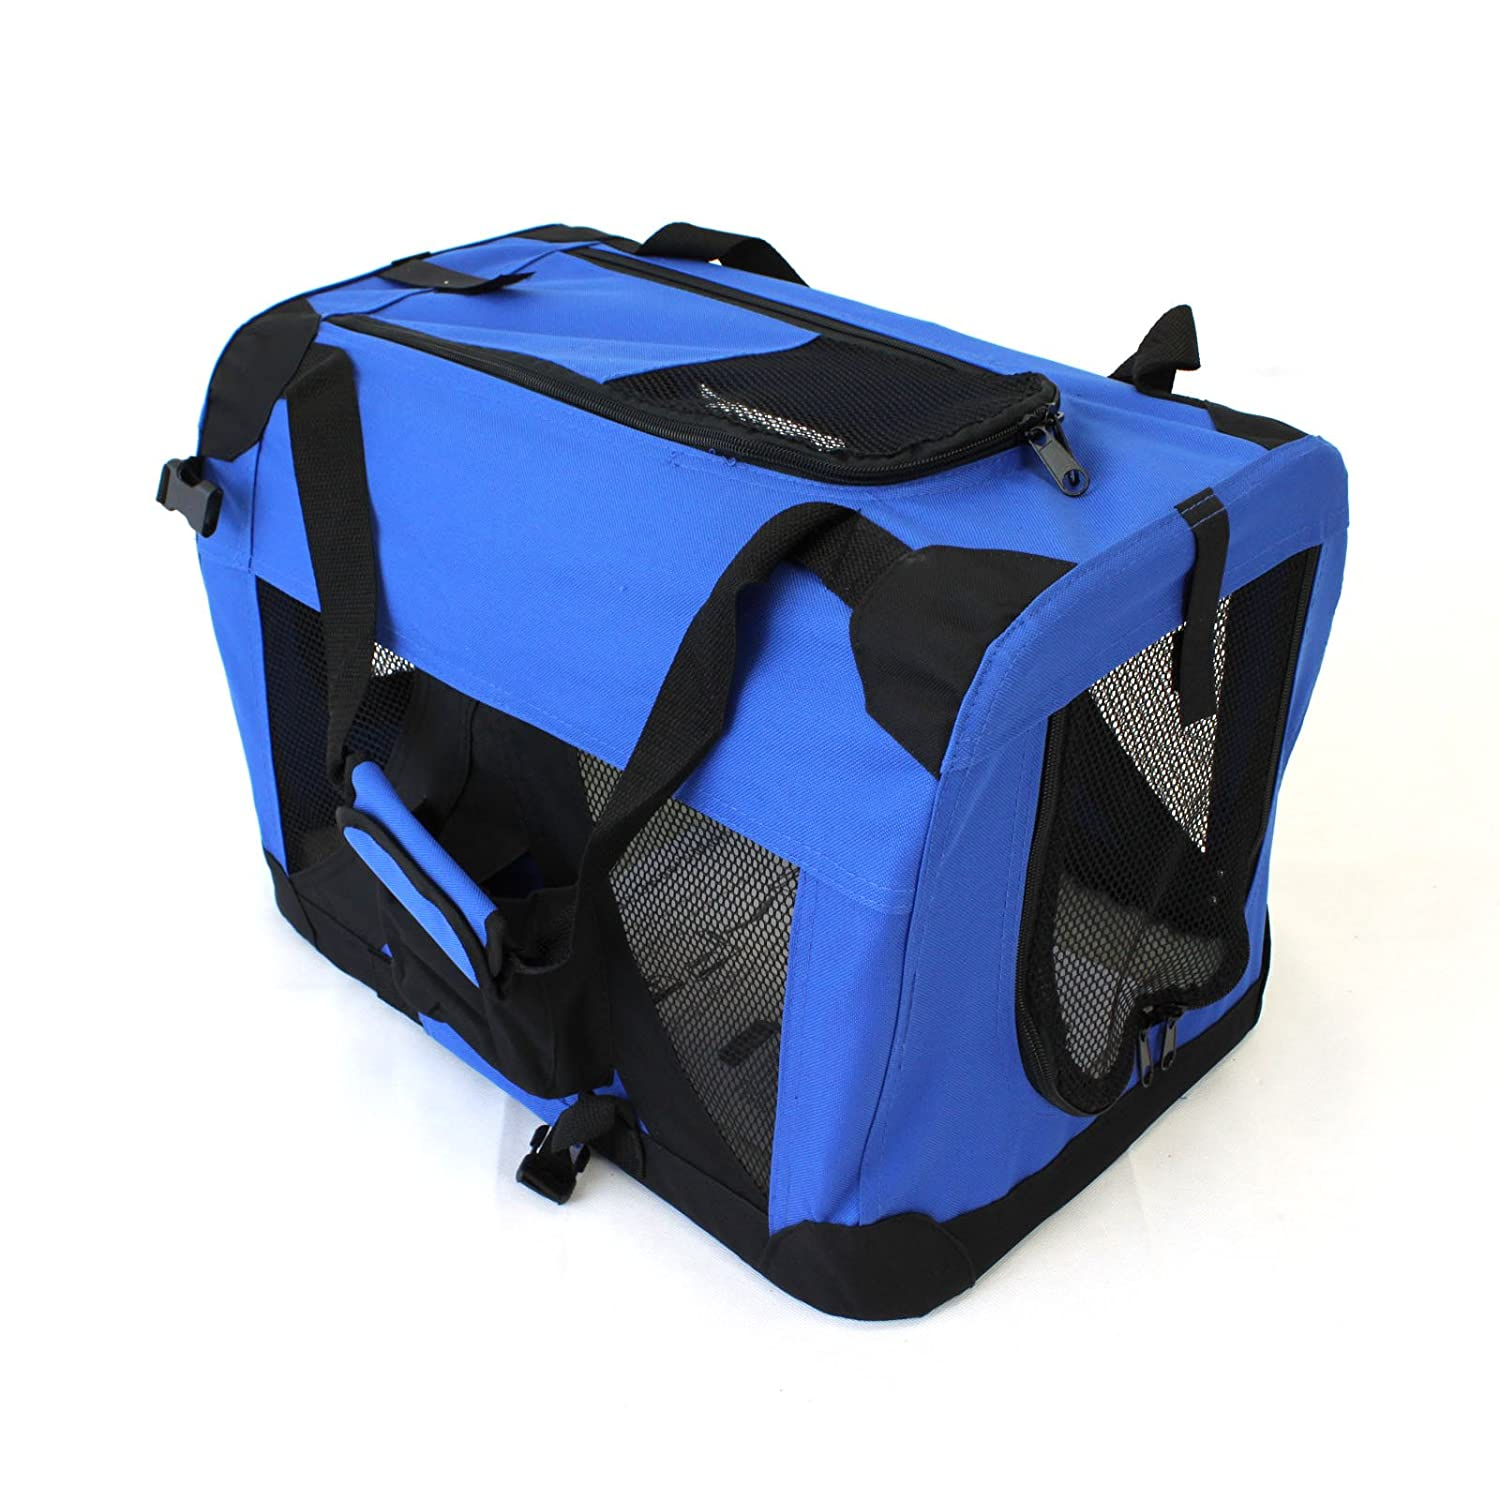 Medium 60x40cm Pet Travel Carrier Soft Crate Portable Puppy Dog Cat Kitten Cage Kennel Home House bluee (Medium 60x40cm)